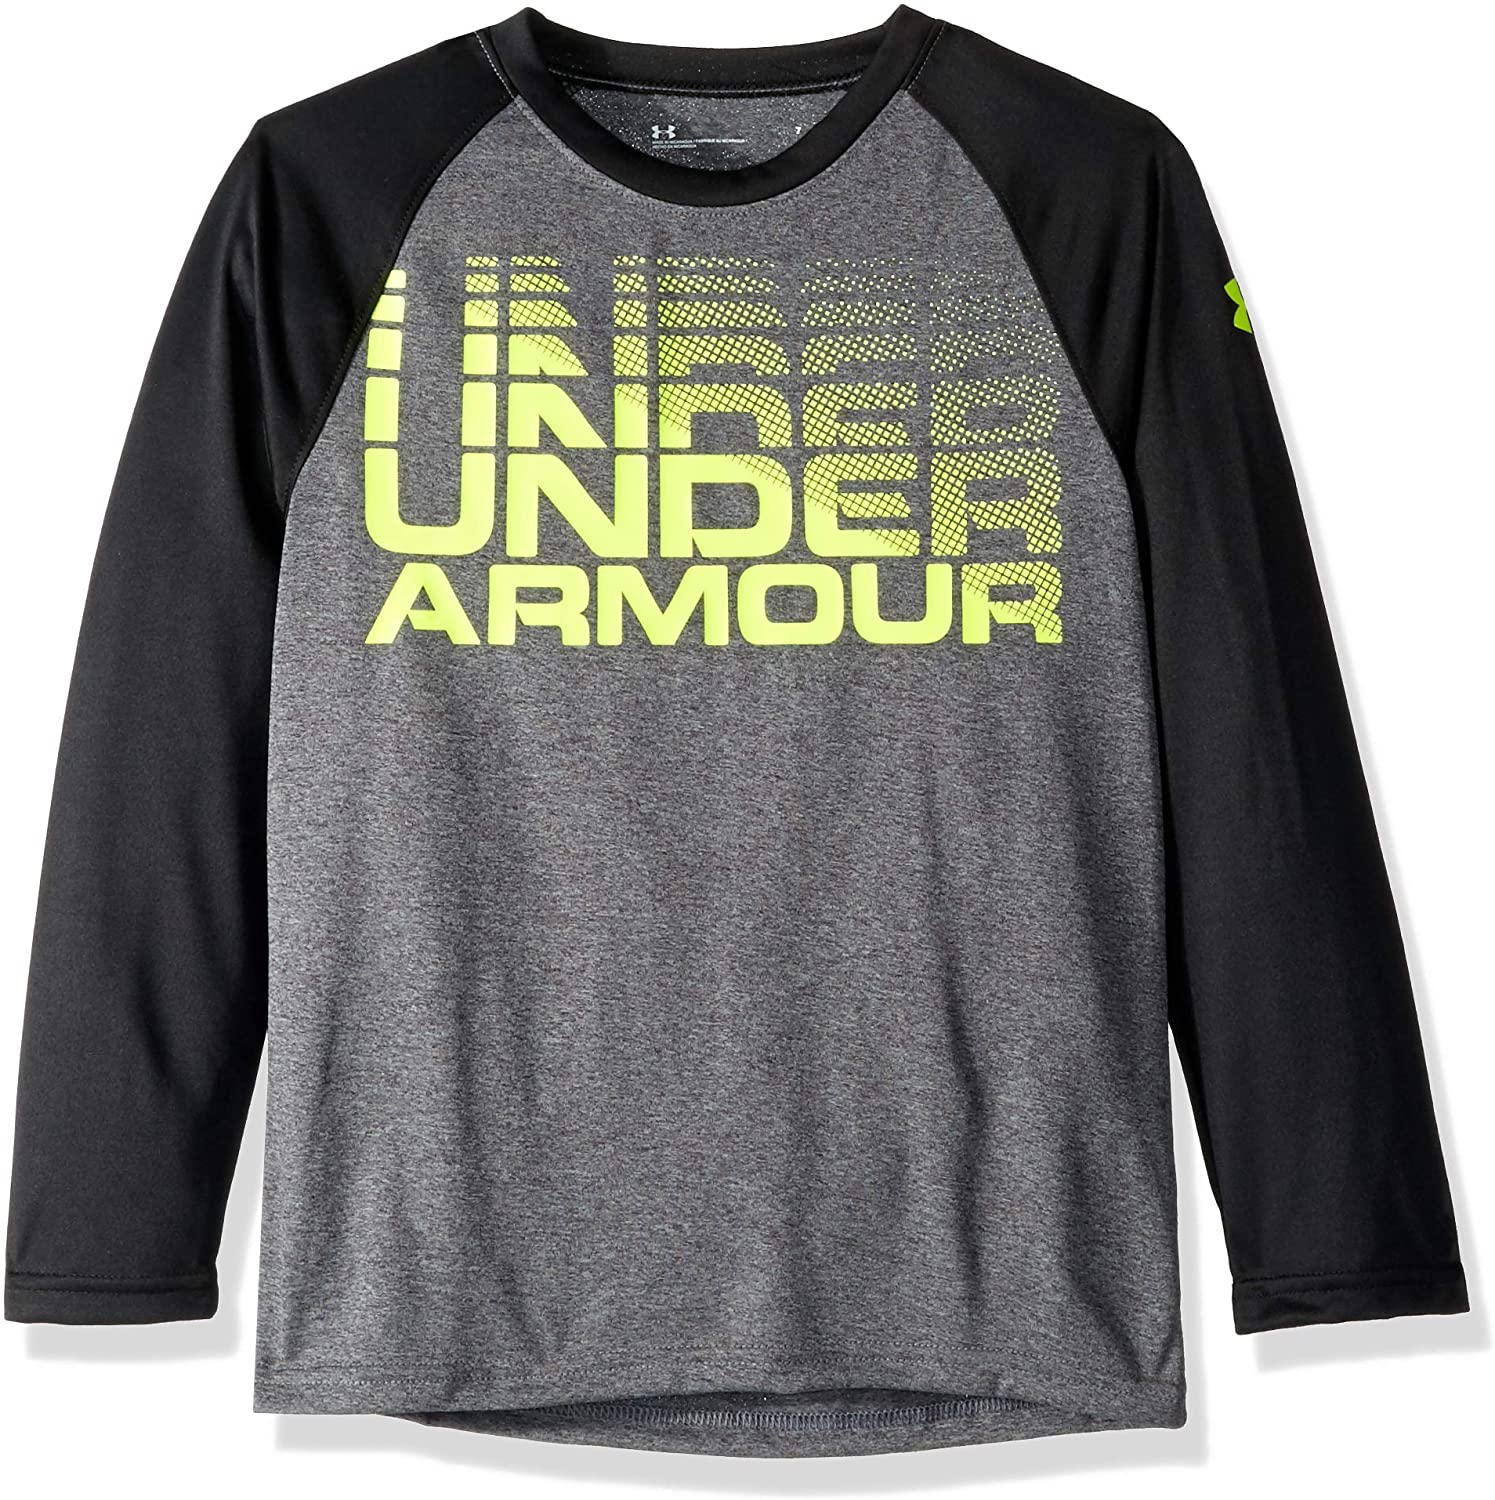 Under Armour Boys Long Sleeve Graphic Tee Shirt